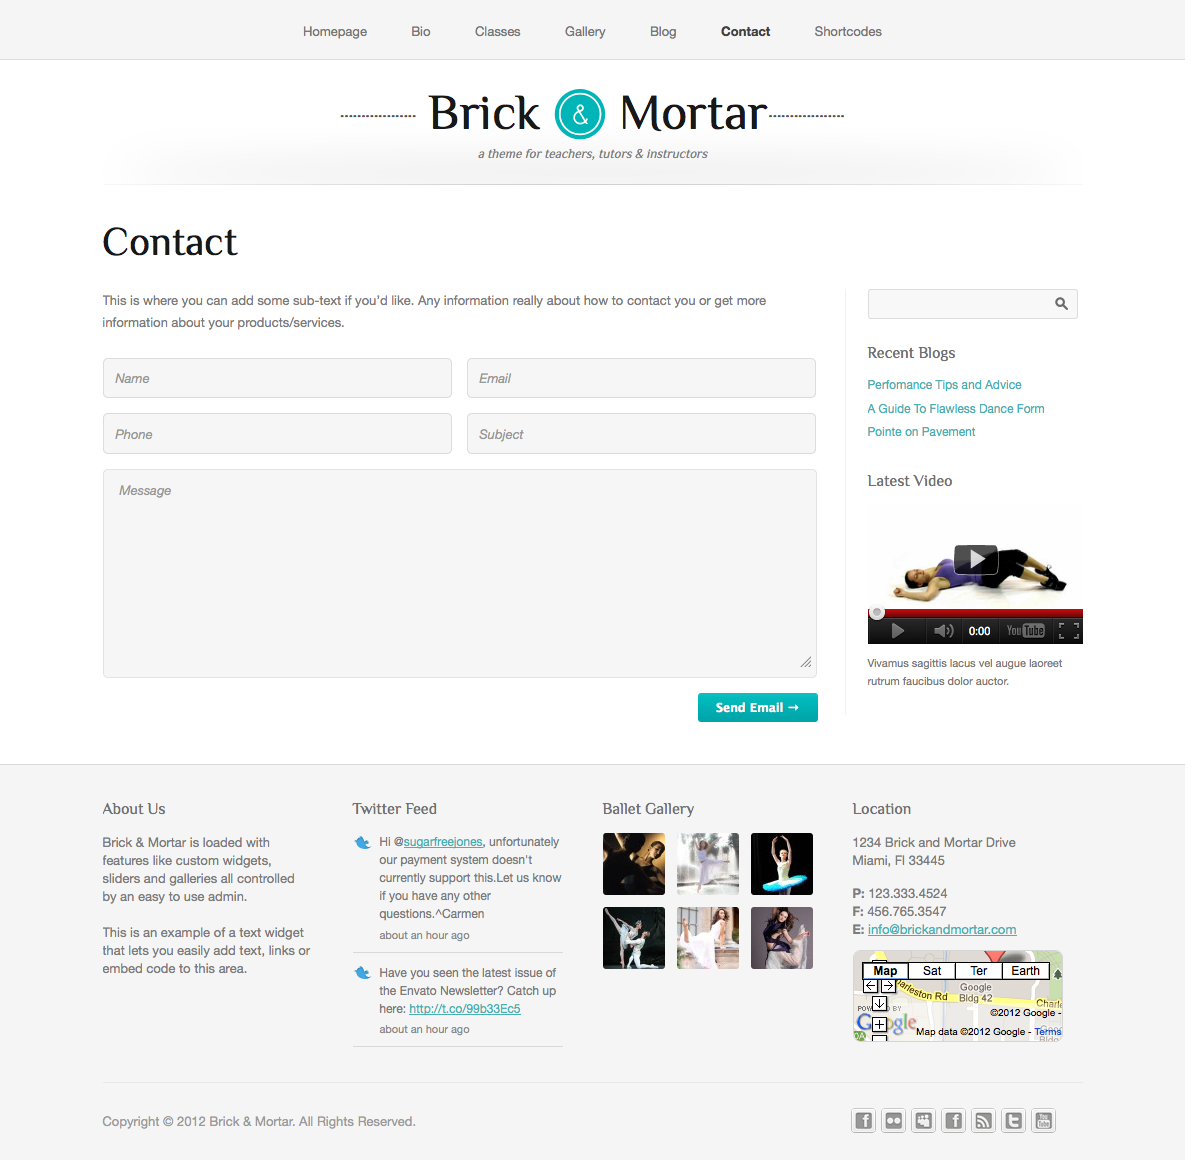 Brick & Mortar - A Personal Business Theme - Contact - Fully working contact form with validation.